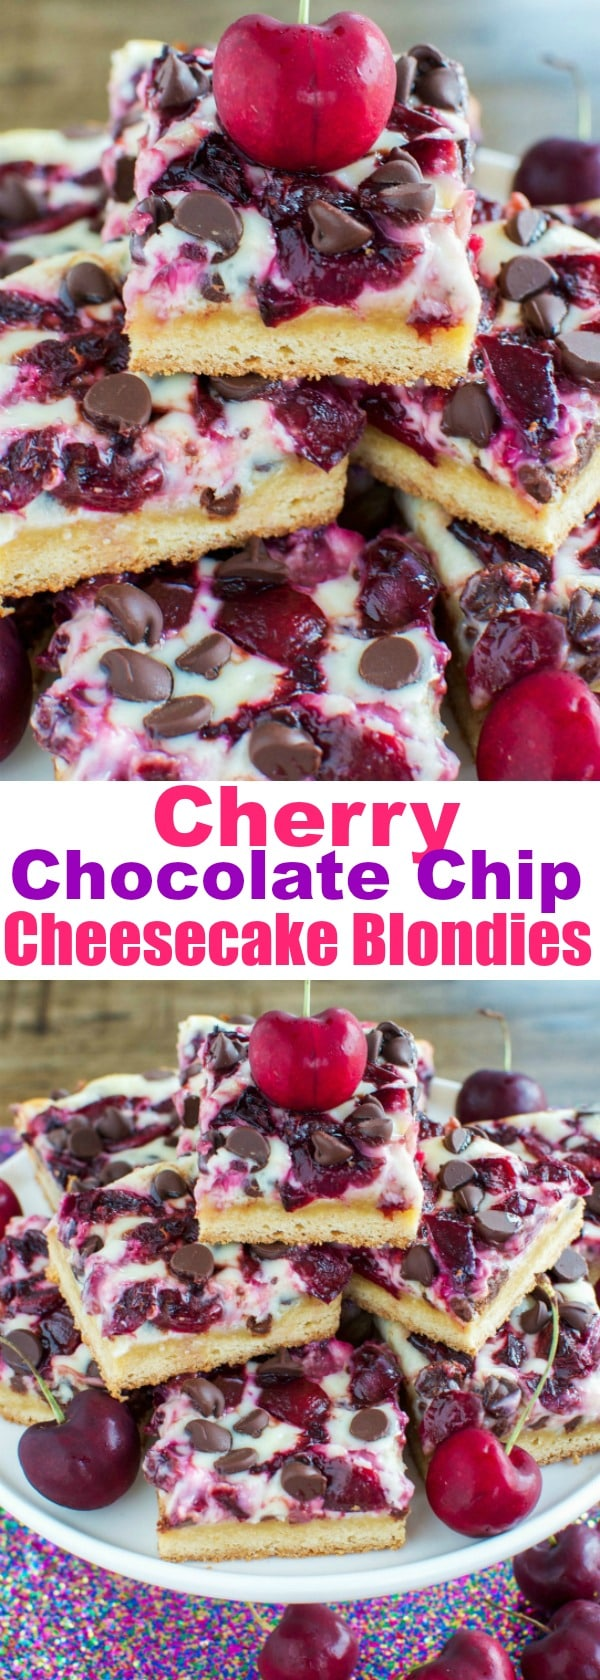 Cherry Chocolate Cheesecake Blondies - such an easy SCRUMPTIOUS dessert!